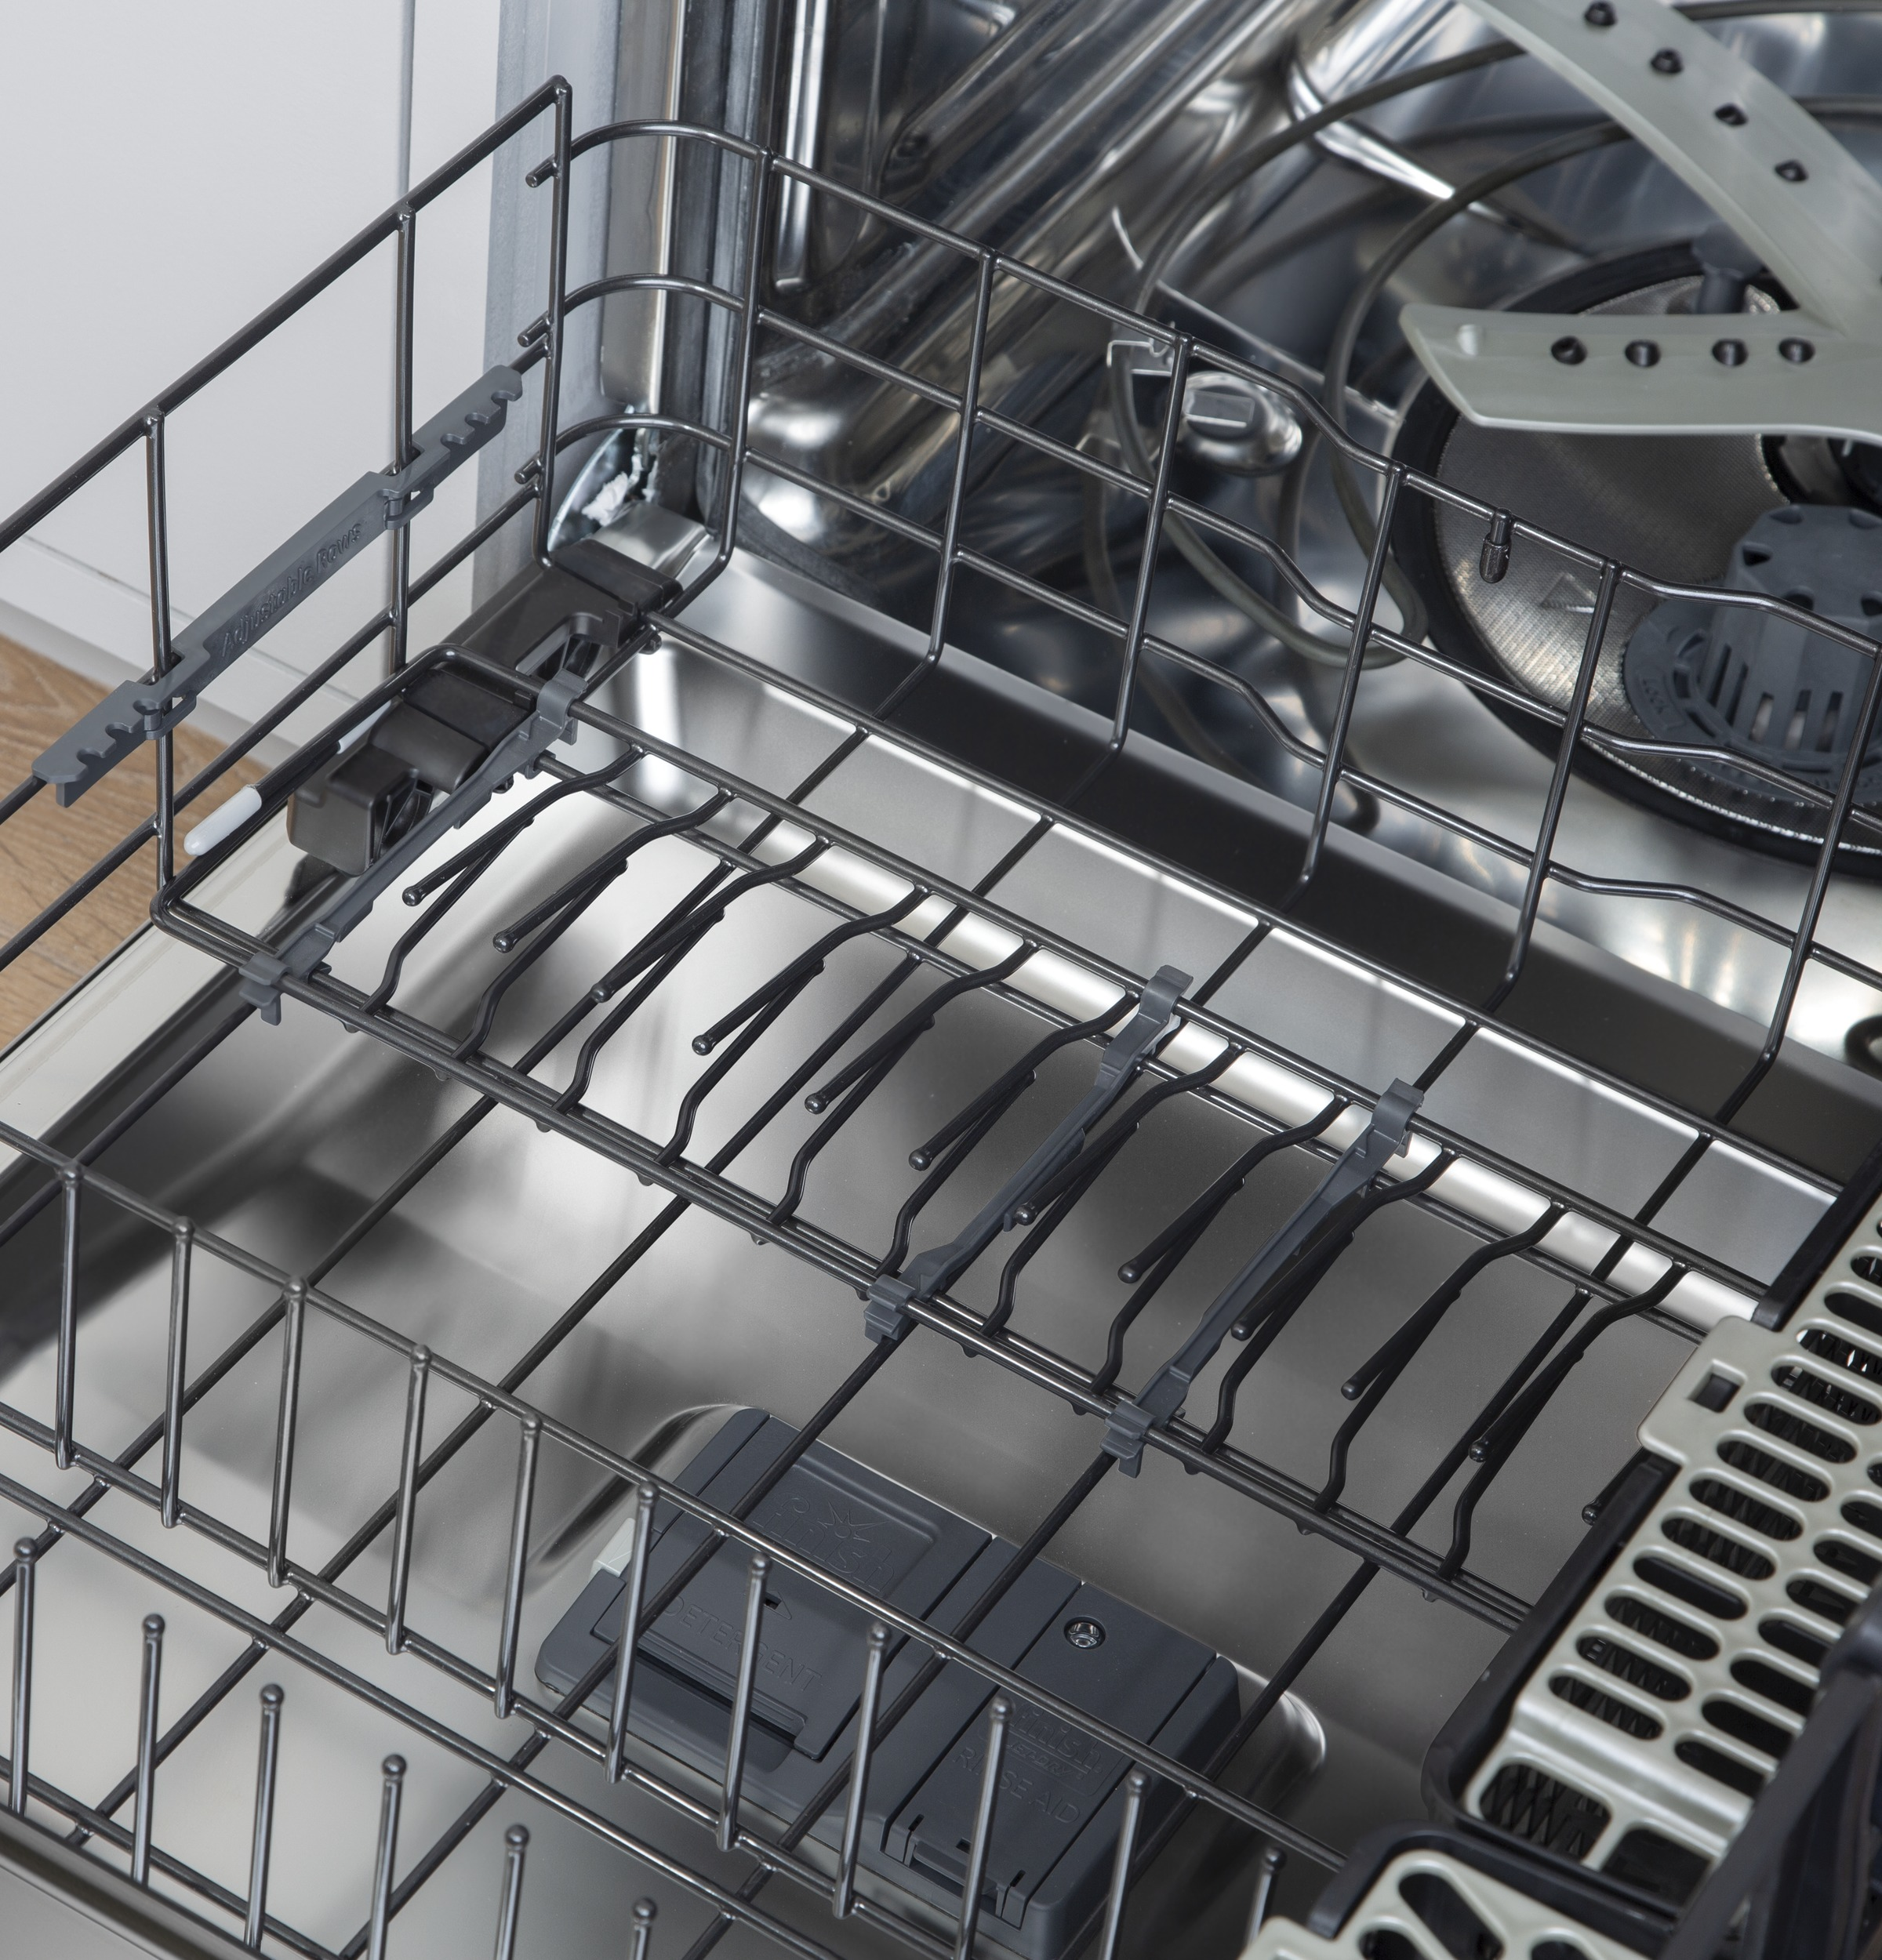 Model: CDT845P2NS1   Cafe Café™ Stainless Steel Interior Dishwasher with Sanitize and Ultra Wash & Dry